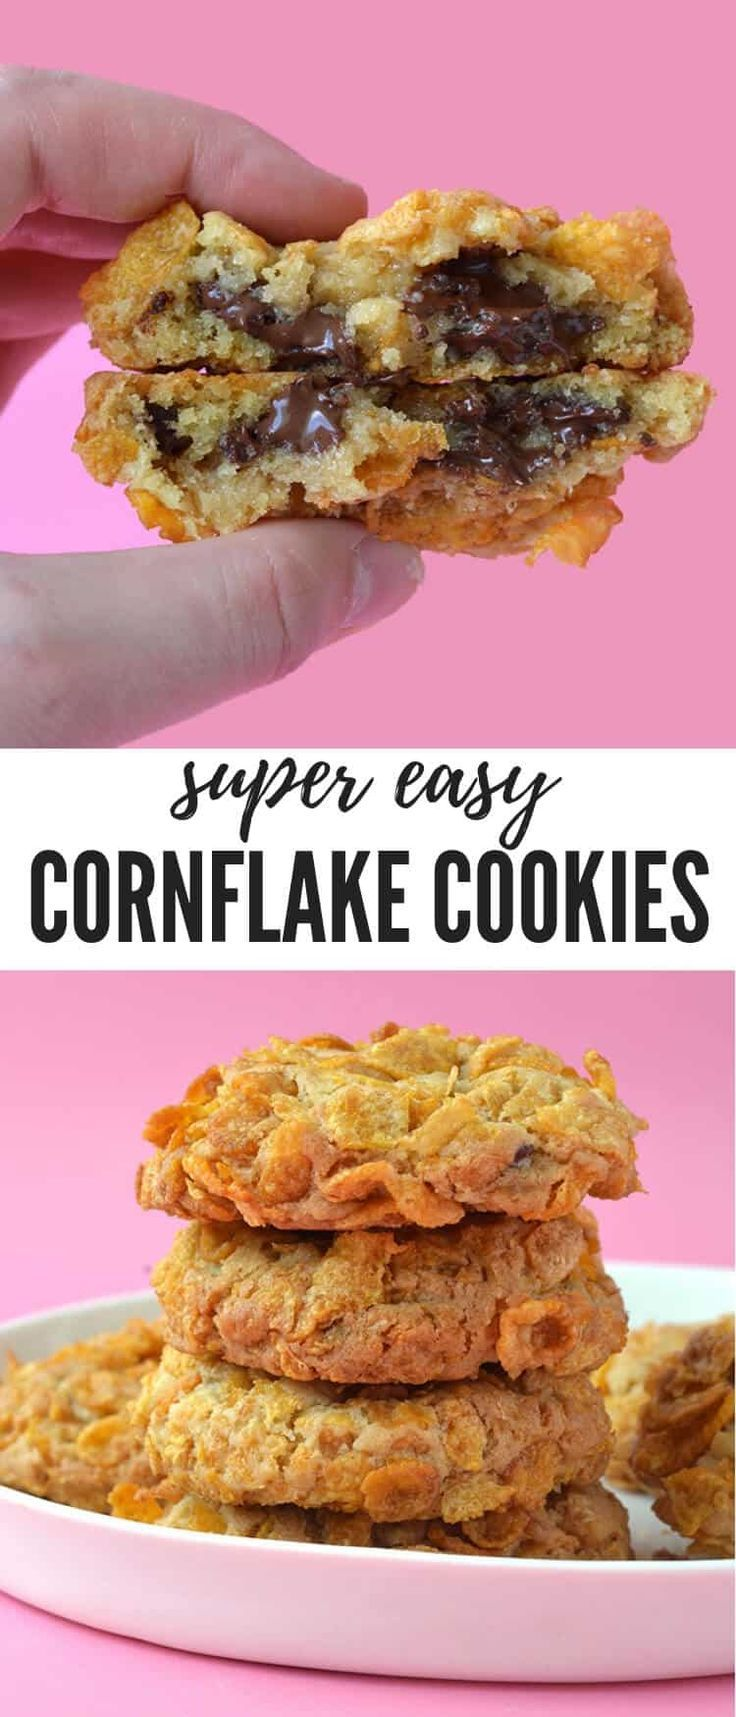 Cornflake Cookies Thick And Chewy Sweetest Menu Recipe Cornflake Cookies Buttery Cookies Cornflake Recipes